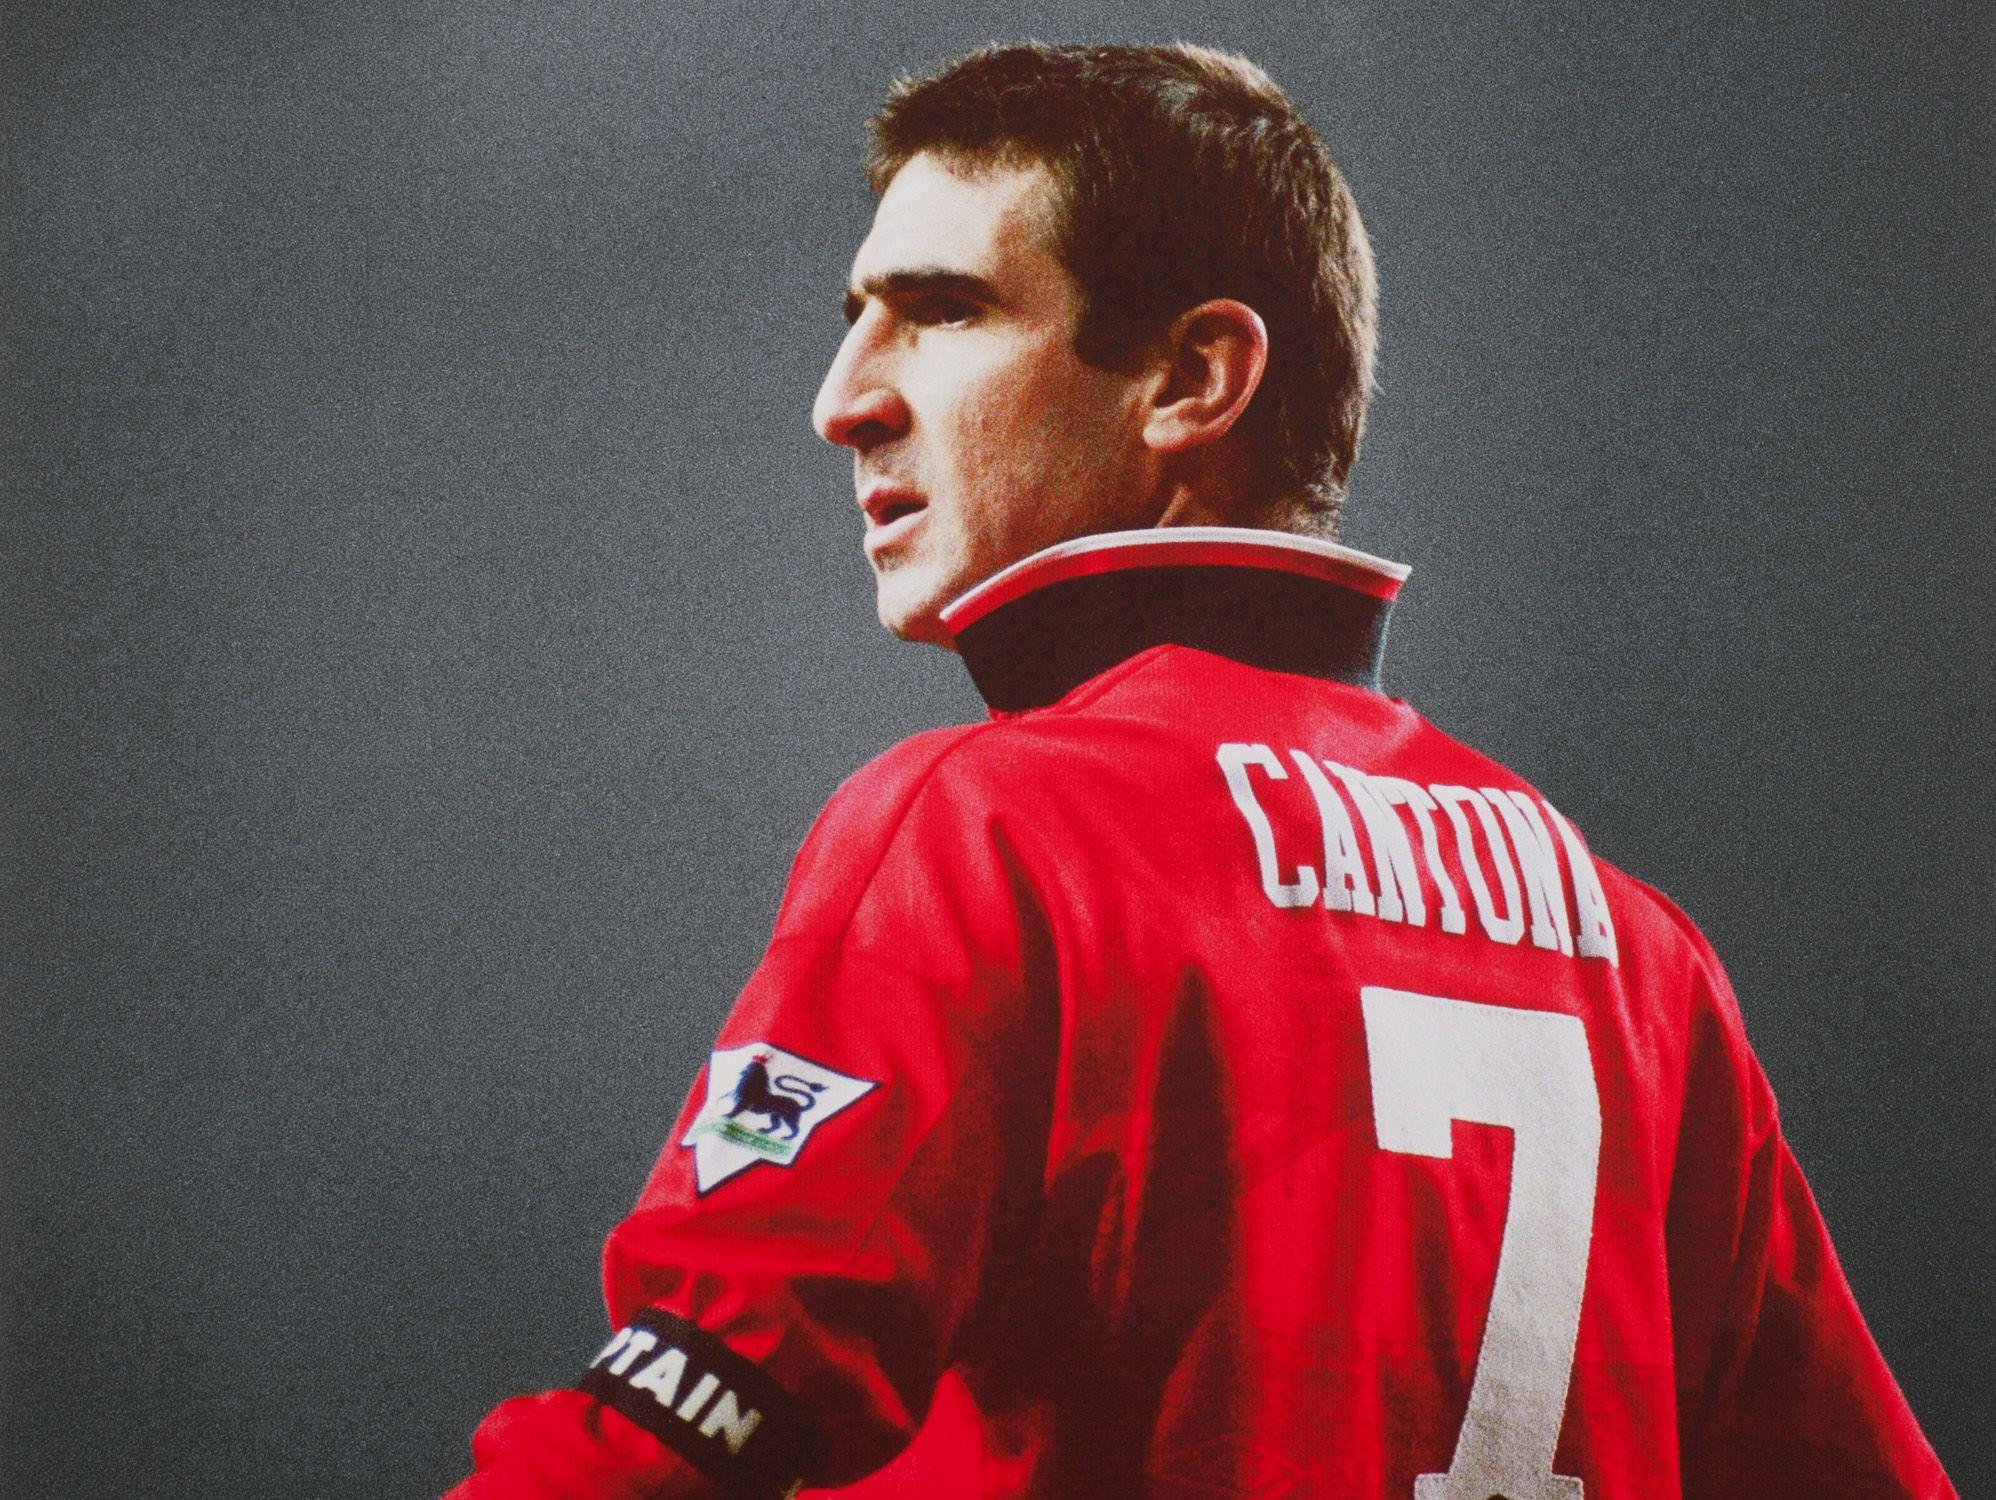 His family home was originally a cave in the foothills of the massif de la sainte baume. Eric Cantona Wallpapers - Wallpaper Cave